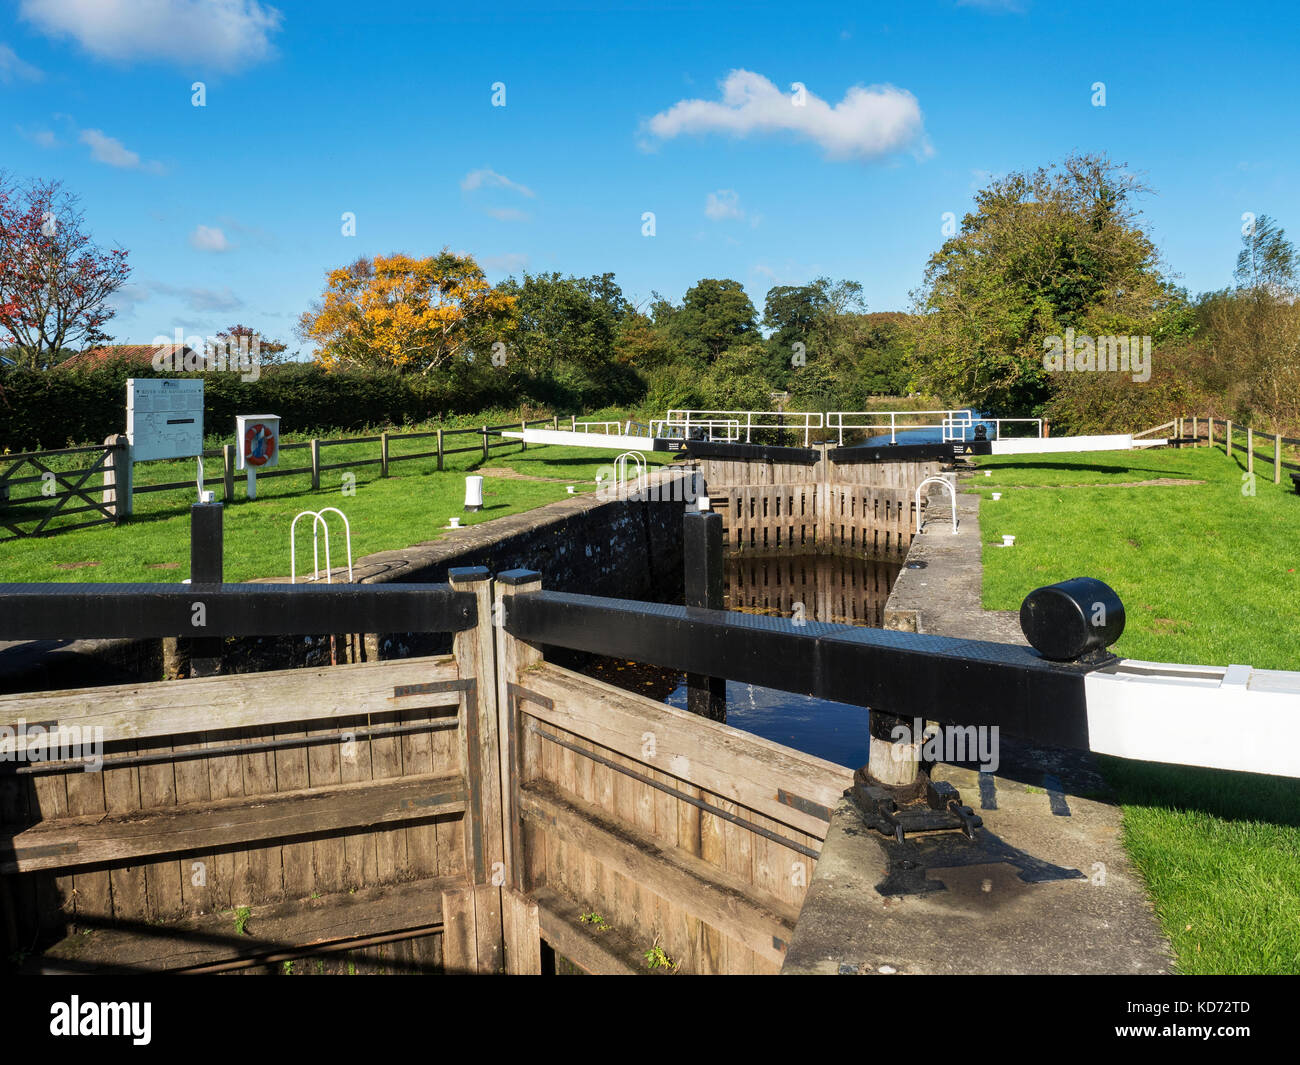 Westwick Lock on Westwick Cut part of the River Ure Navigation Bishop Monkton North Yorkshire England - Stock Image